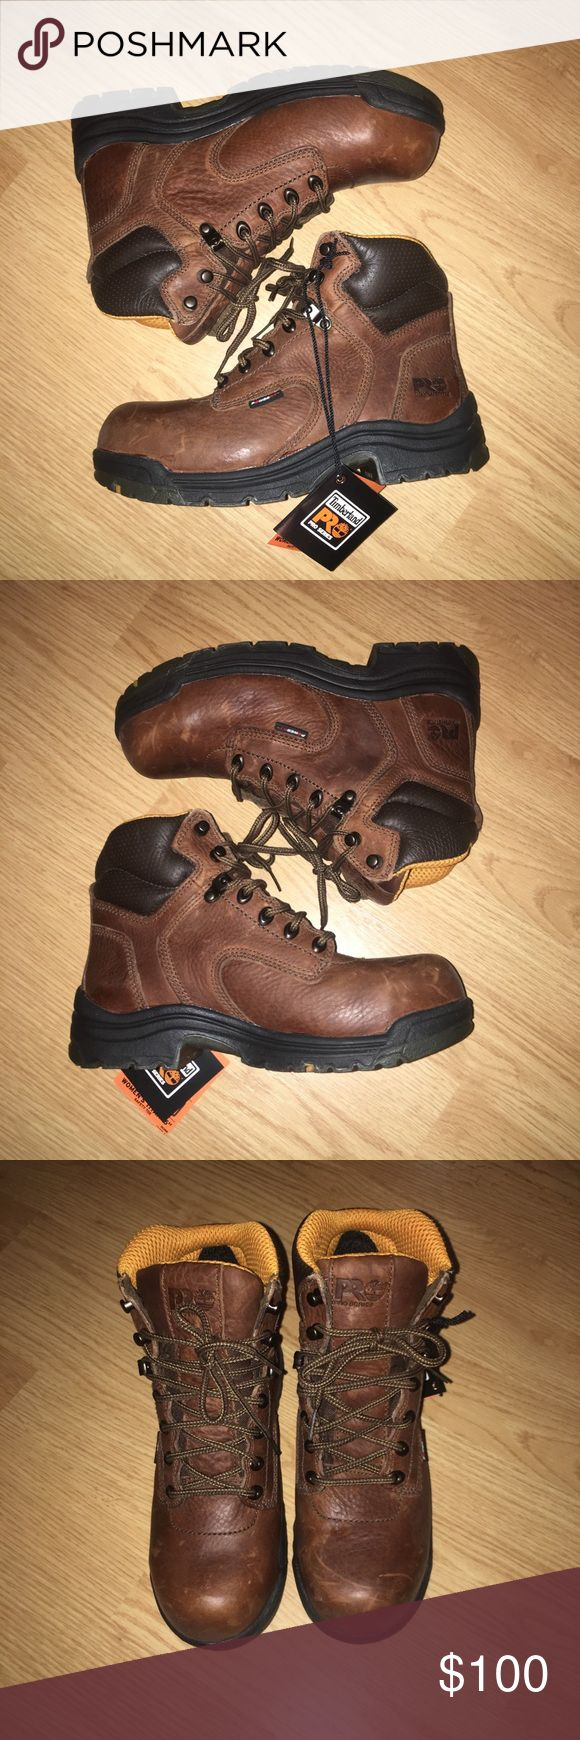 "Timberland Pro Series Women's Titan 6"" Timberland Pro Series Women's Titan 6"" safety toe. Color: coffee - 26388. Size 7.5 NWB. Never worn- only tried on. Timberland Shoes Combat & Moto Boots"